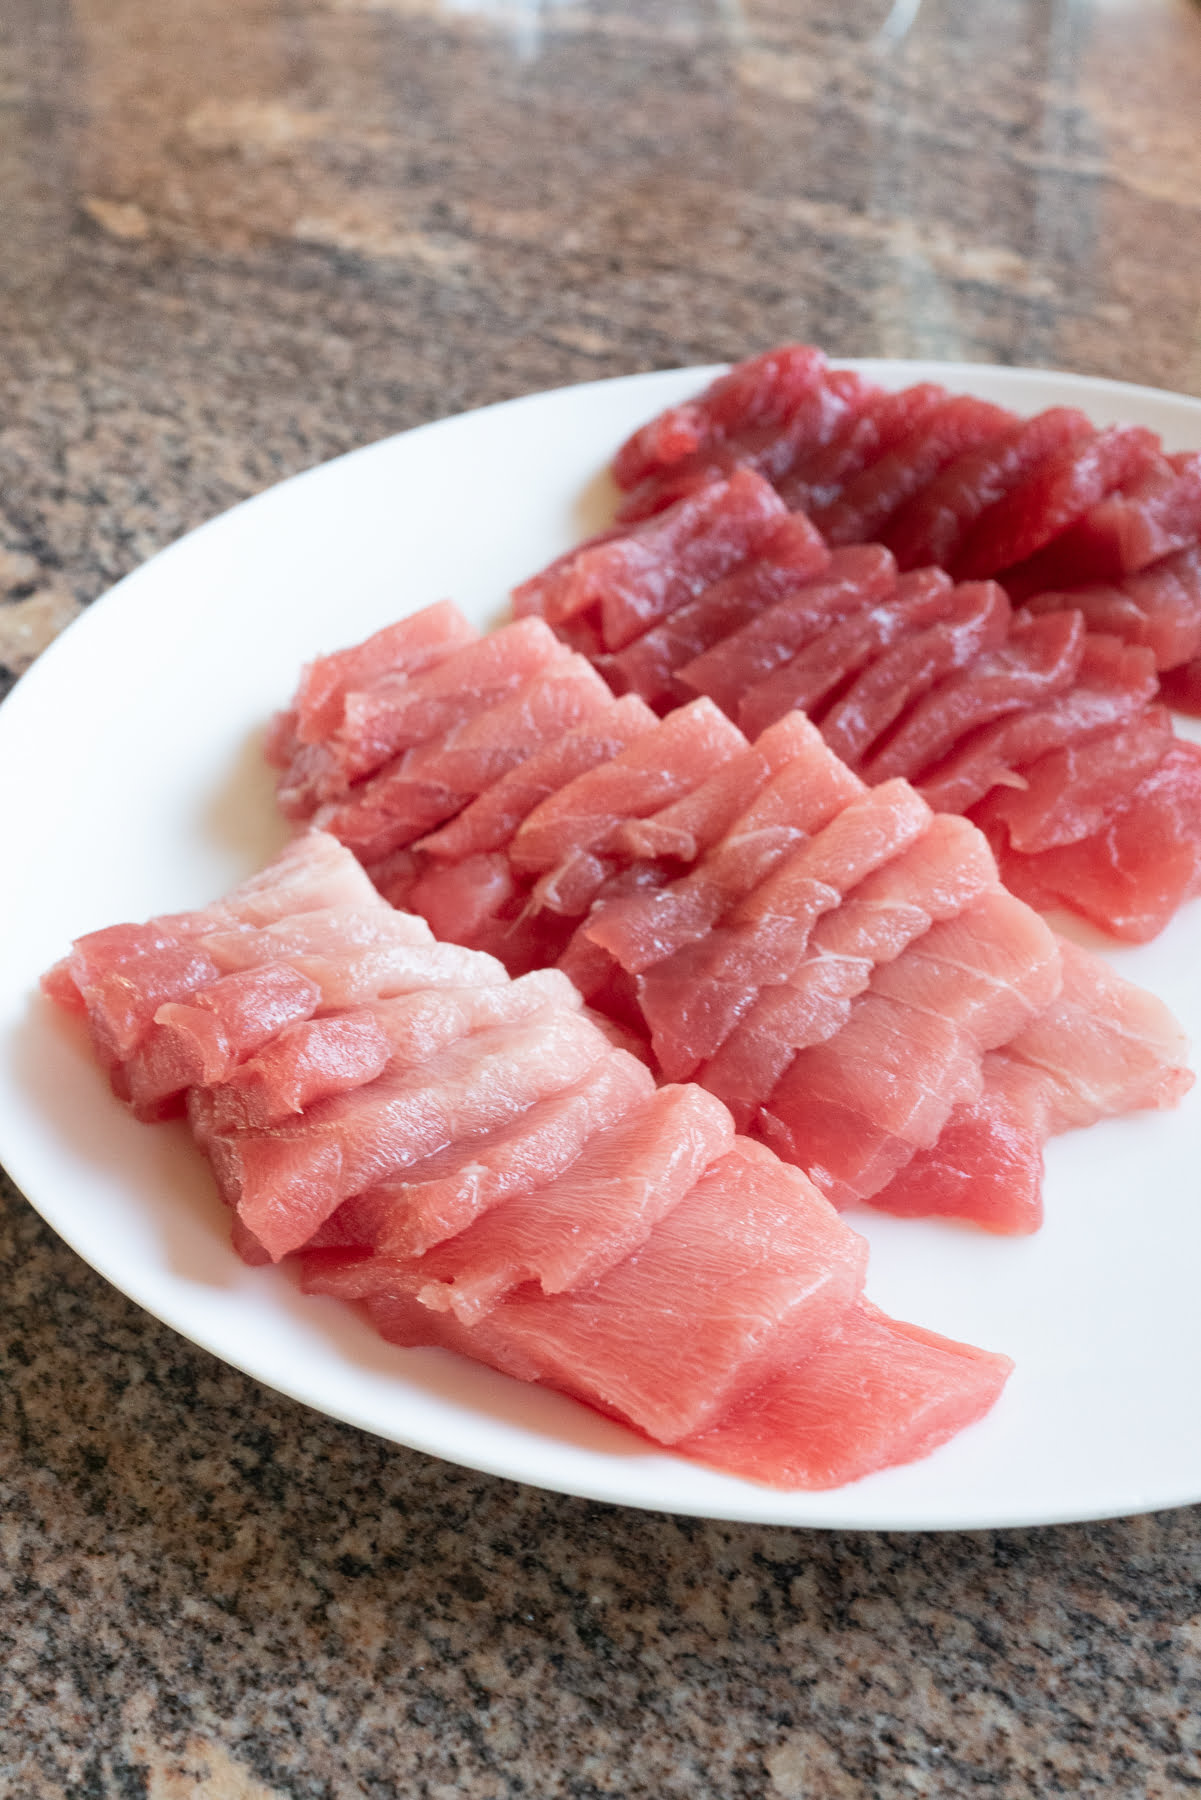 A plate of fresh ahi sashimi, sliced and ready to use for homemade sushi.